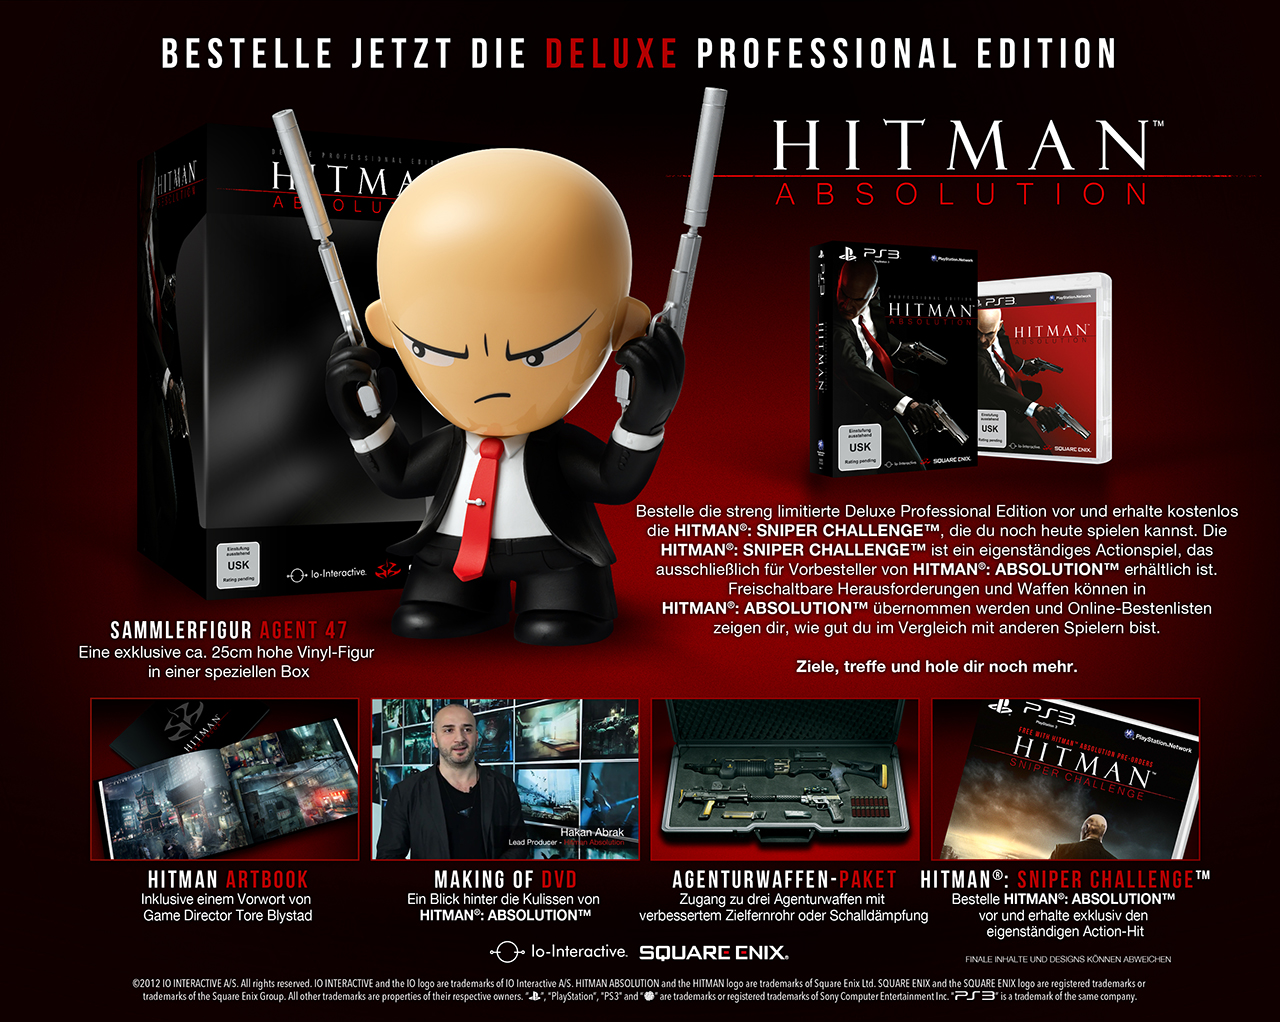 hitman absolution deluxe professional edition - Hitman Absolution: (Deluxe) Professional Editions angekündigt